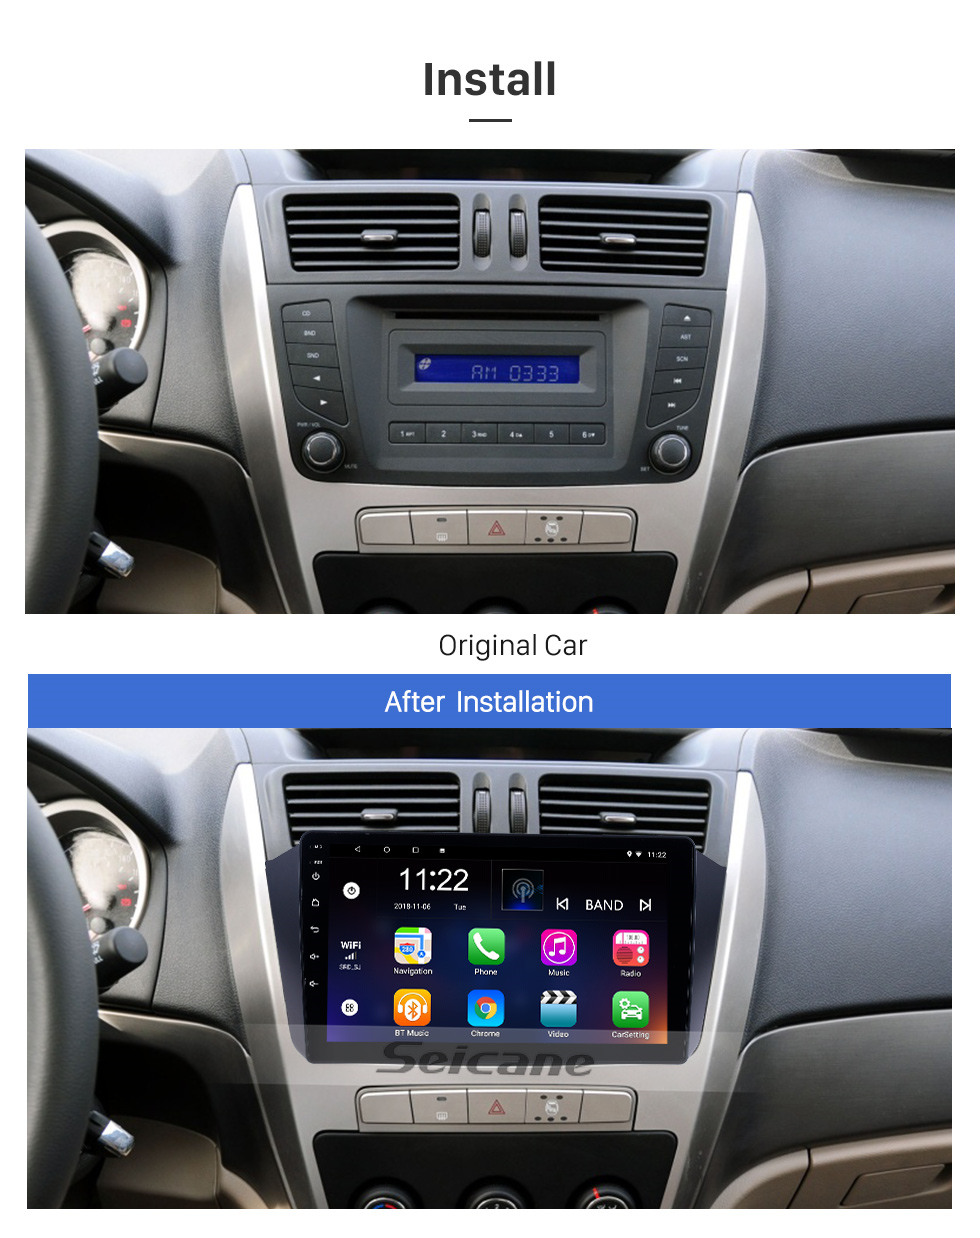 Seicane OEM 9 inch Android 10.0 for 2012 2013 2014 Geely GX7 Radio Bluetooth HD Touchscreen GPS Navigation System support Carplay DAB+ OBD2